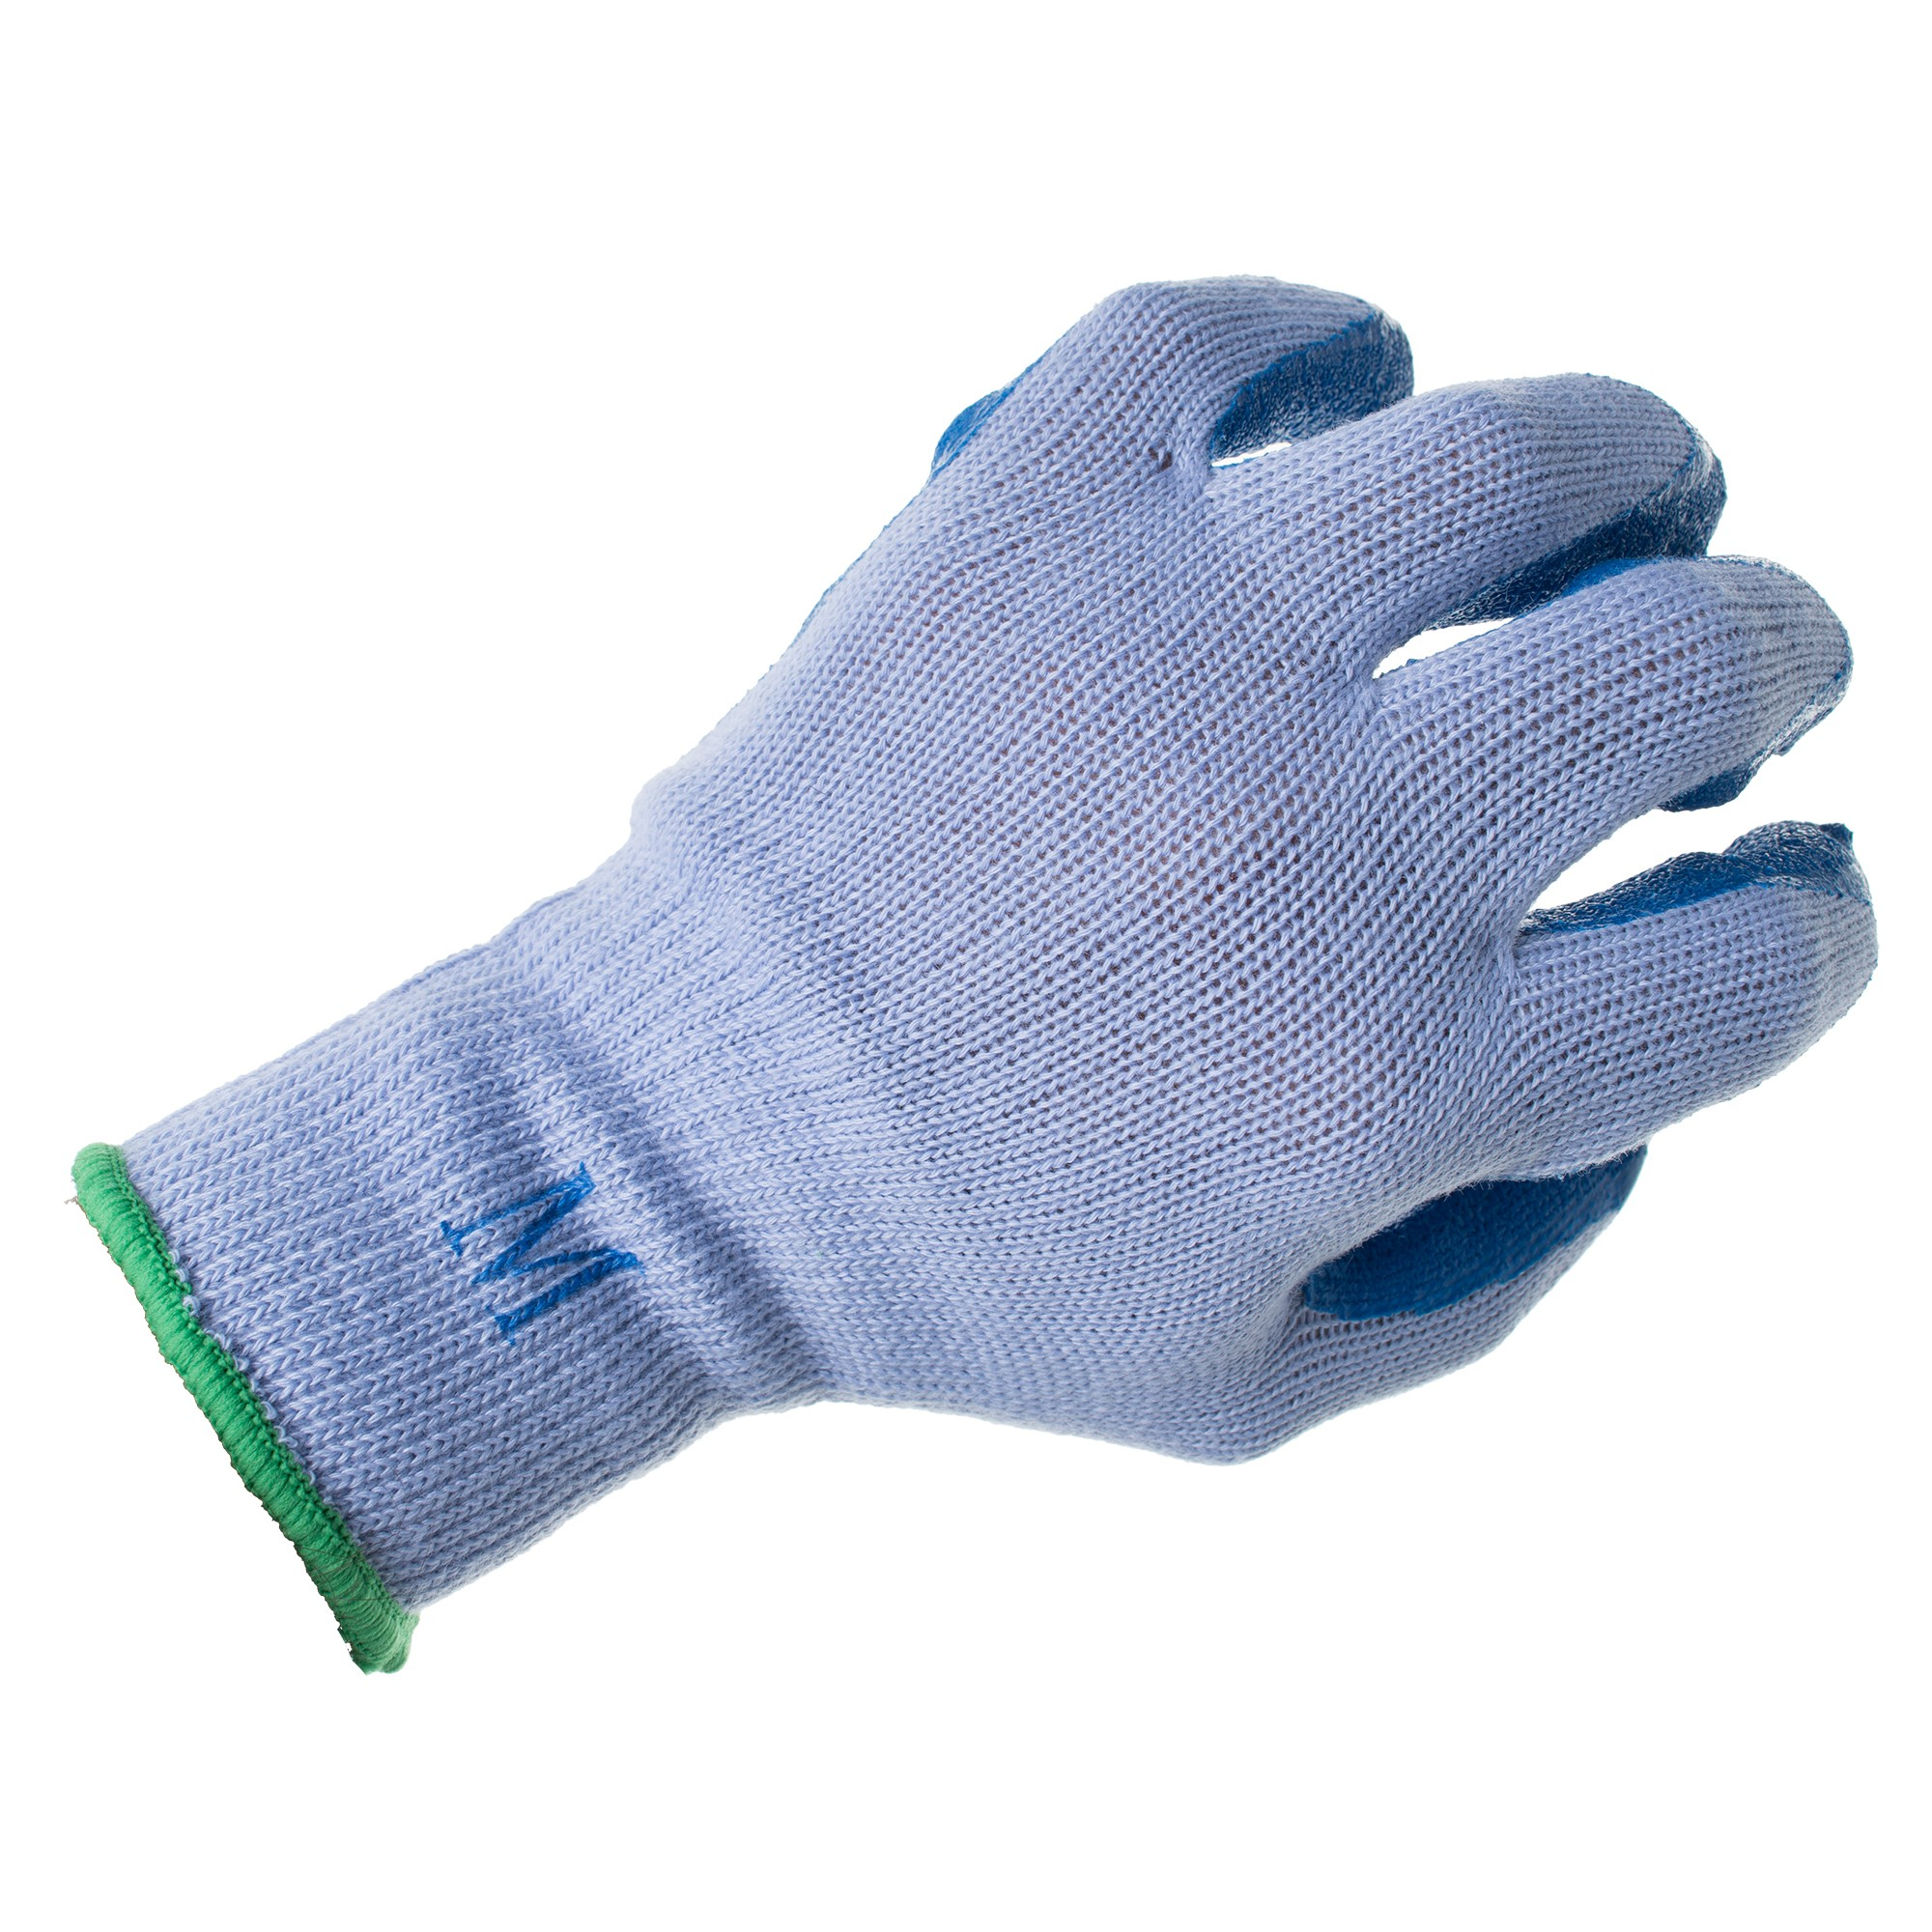 Lobster Gloves - Rubber Coated Back Cupped